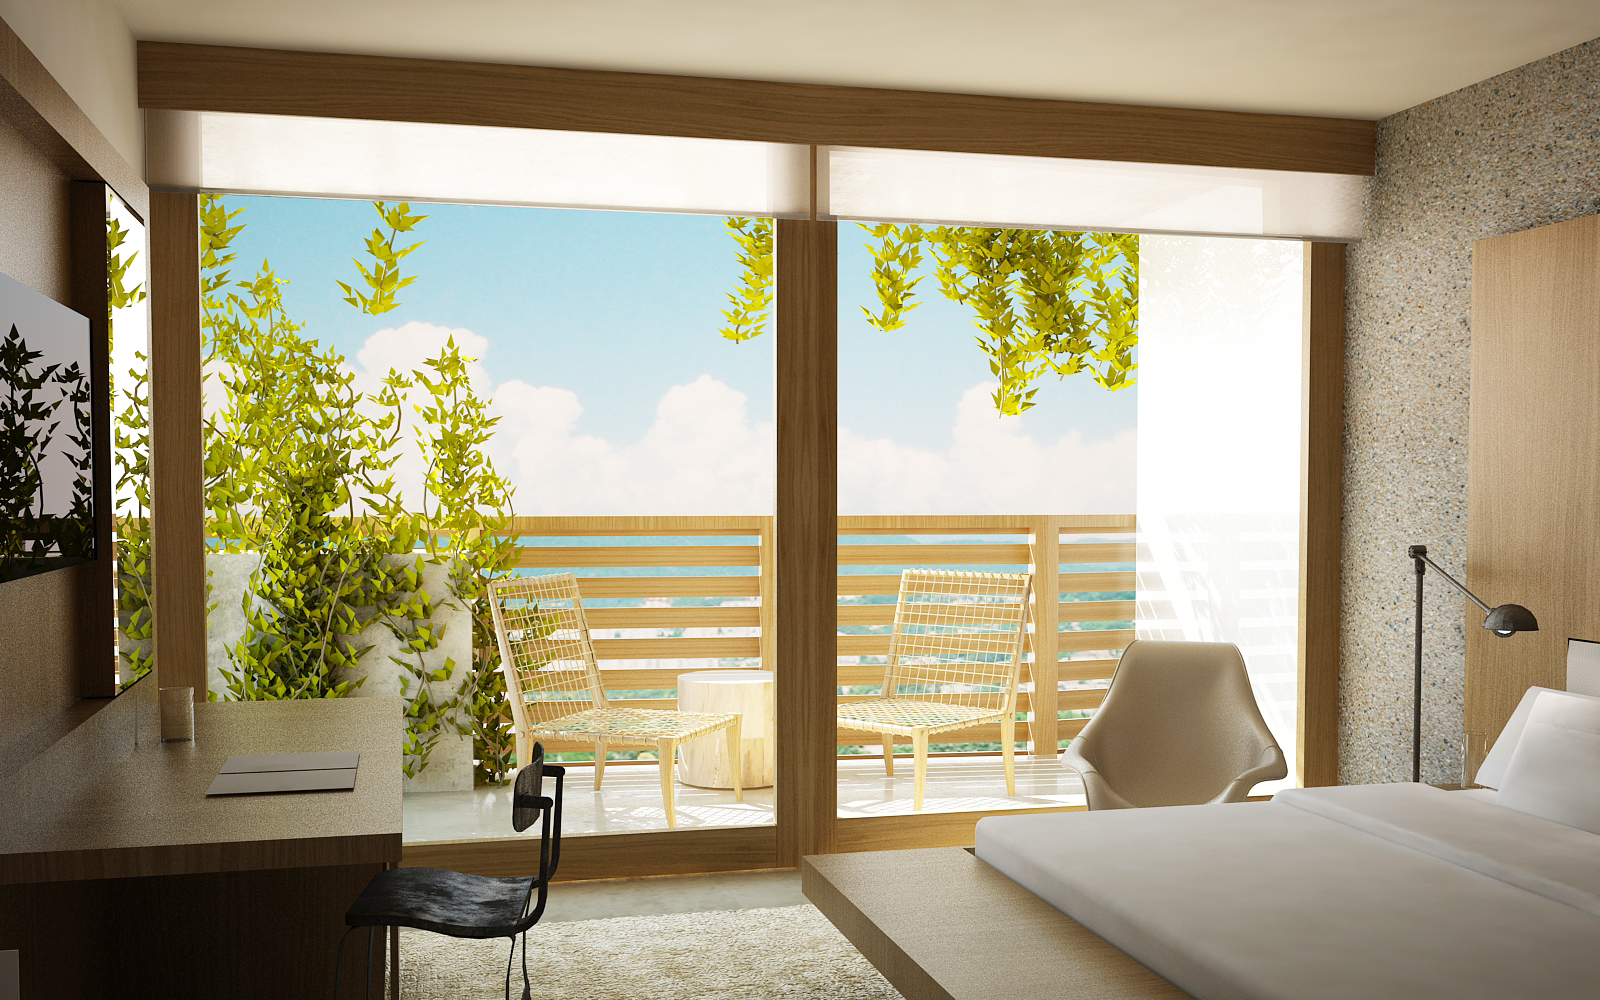 Sochi Olympic Village Master Bedroom Rendering